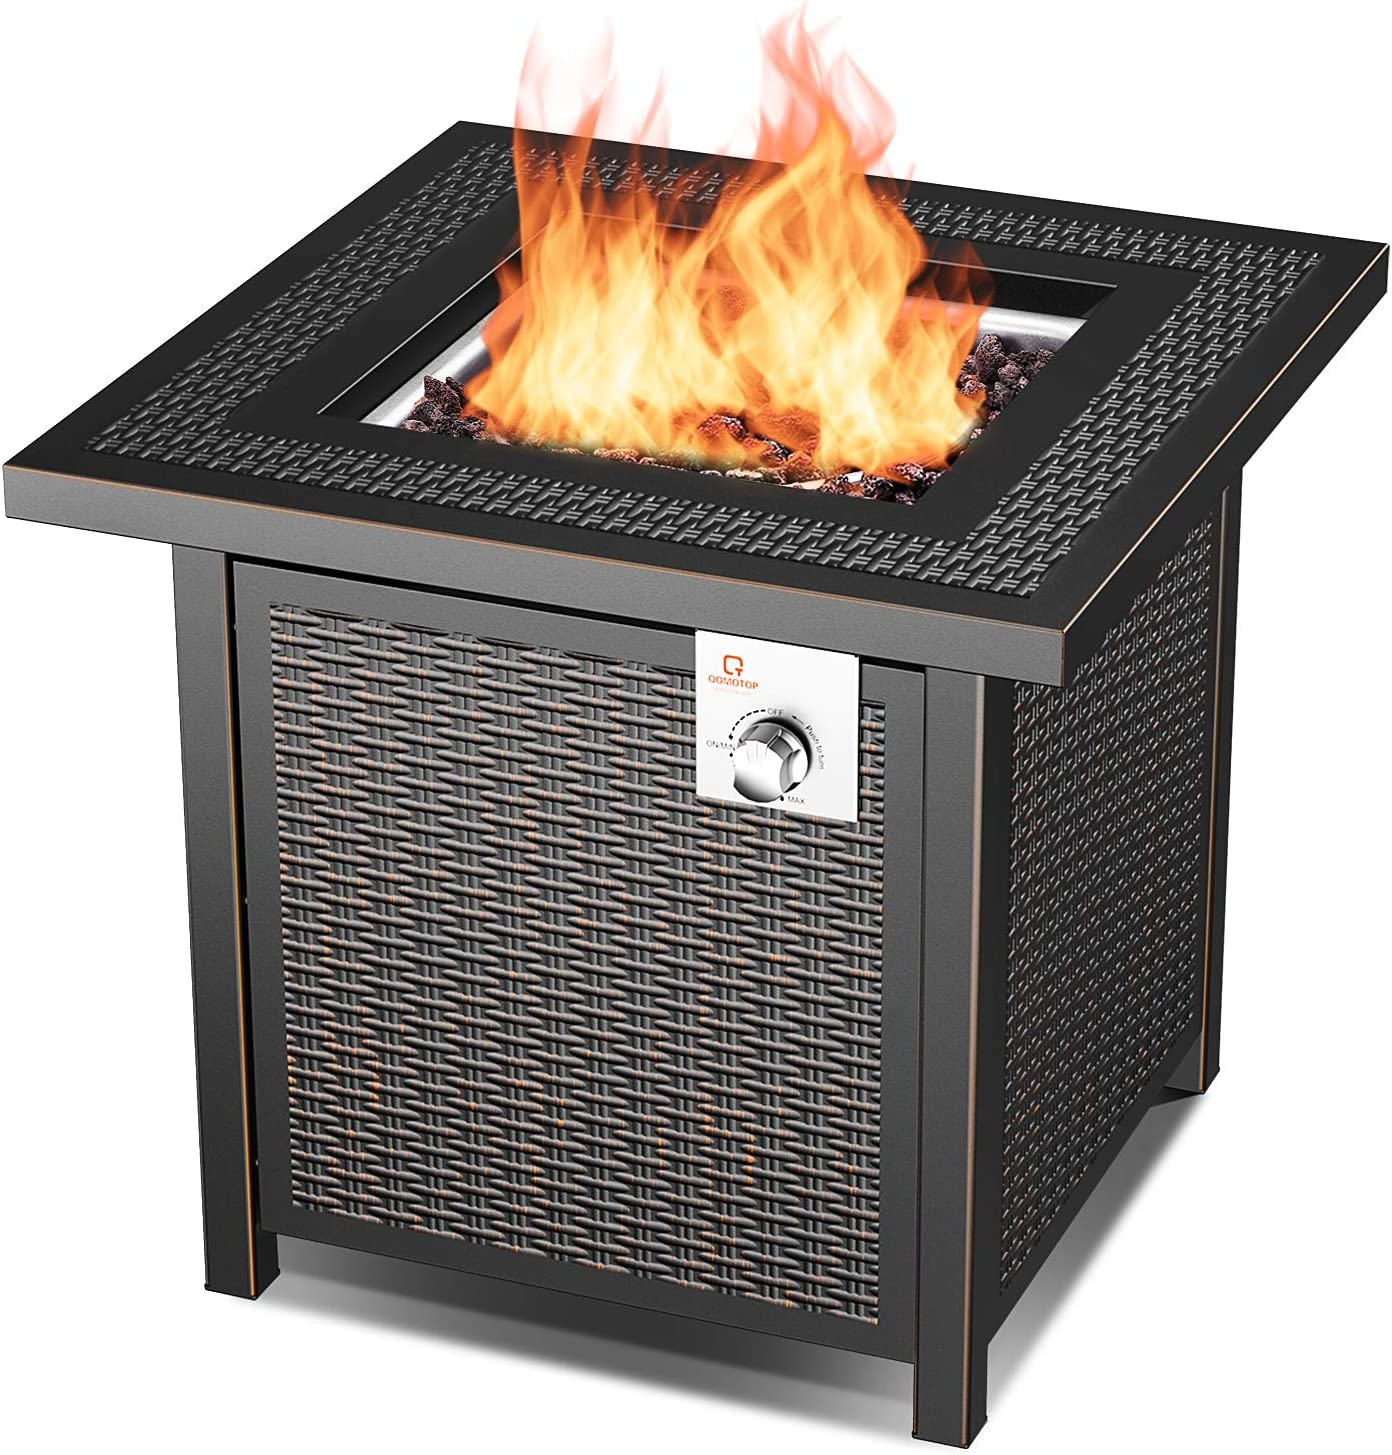 Amazon Com 28 Propane Fire Pit Table 50 000 Btu Ot Qomotop Auto Ignition Fire Pit Rattan Wicker Look Square Fire Table With Lid Csa Safety Certification Adjustable Flame Garden Outdoor